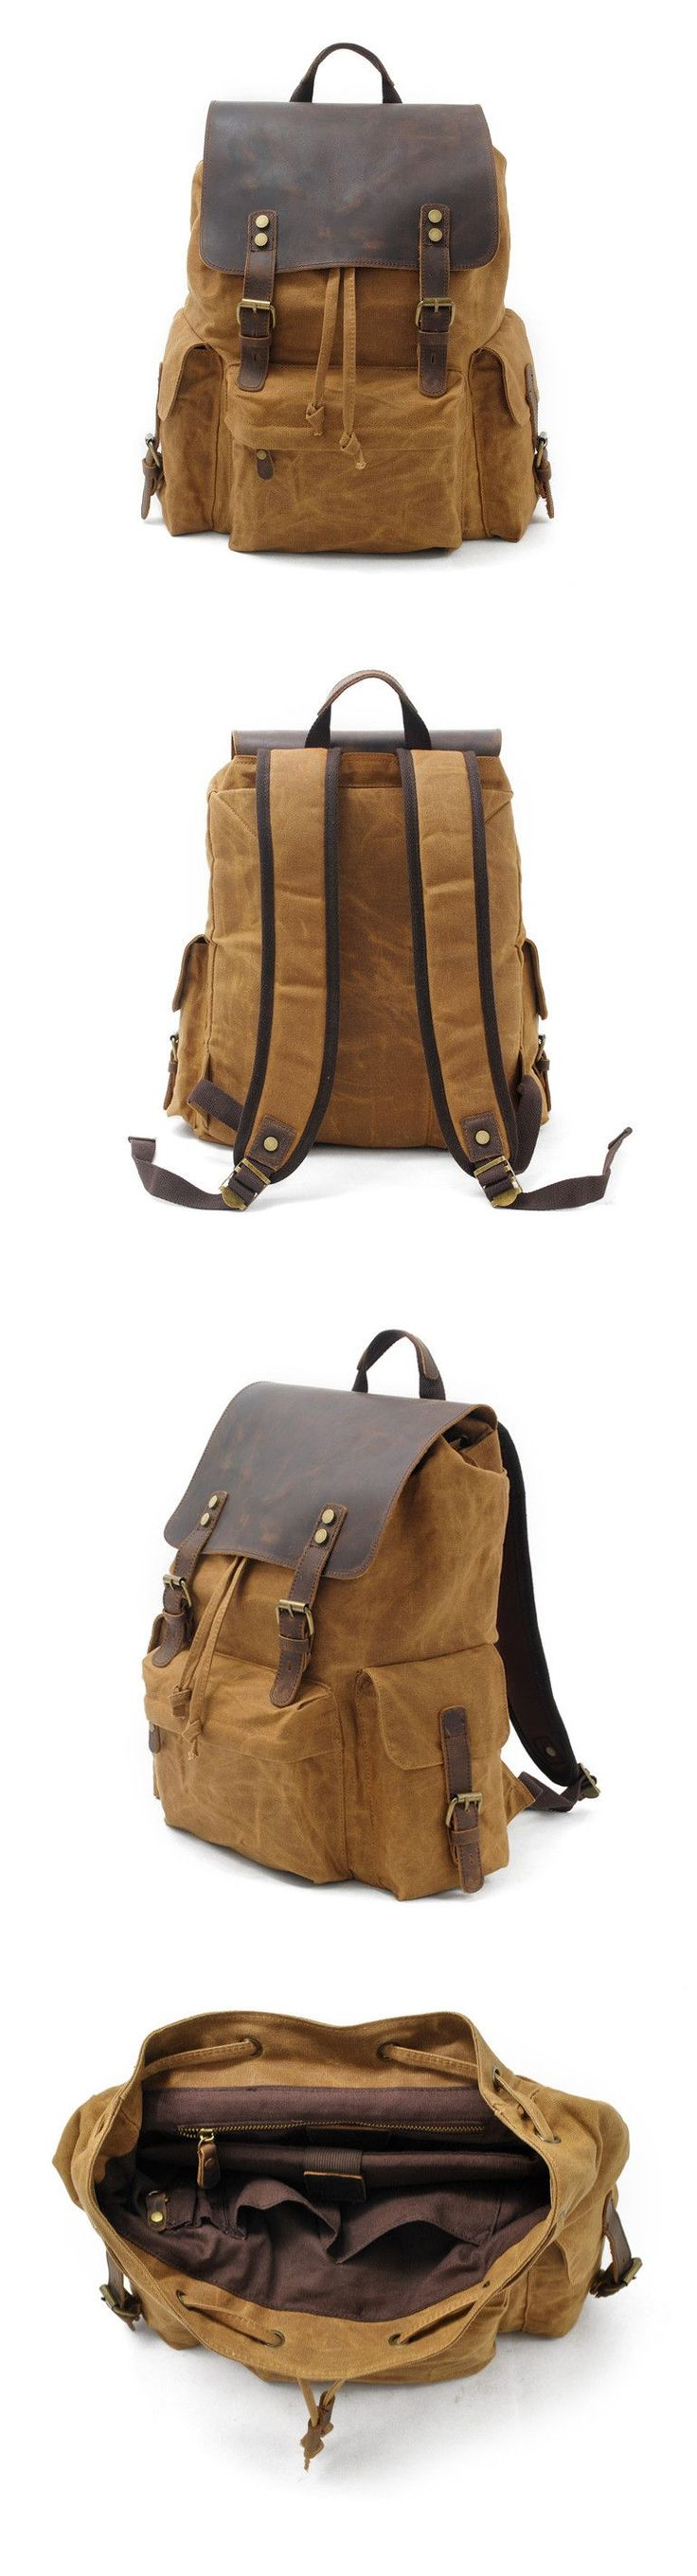 Waxed Canvas Leather Backpack Rucksack School Backpack Hiking Travel Backpack